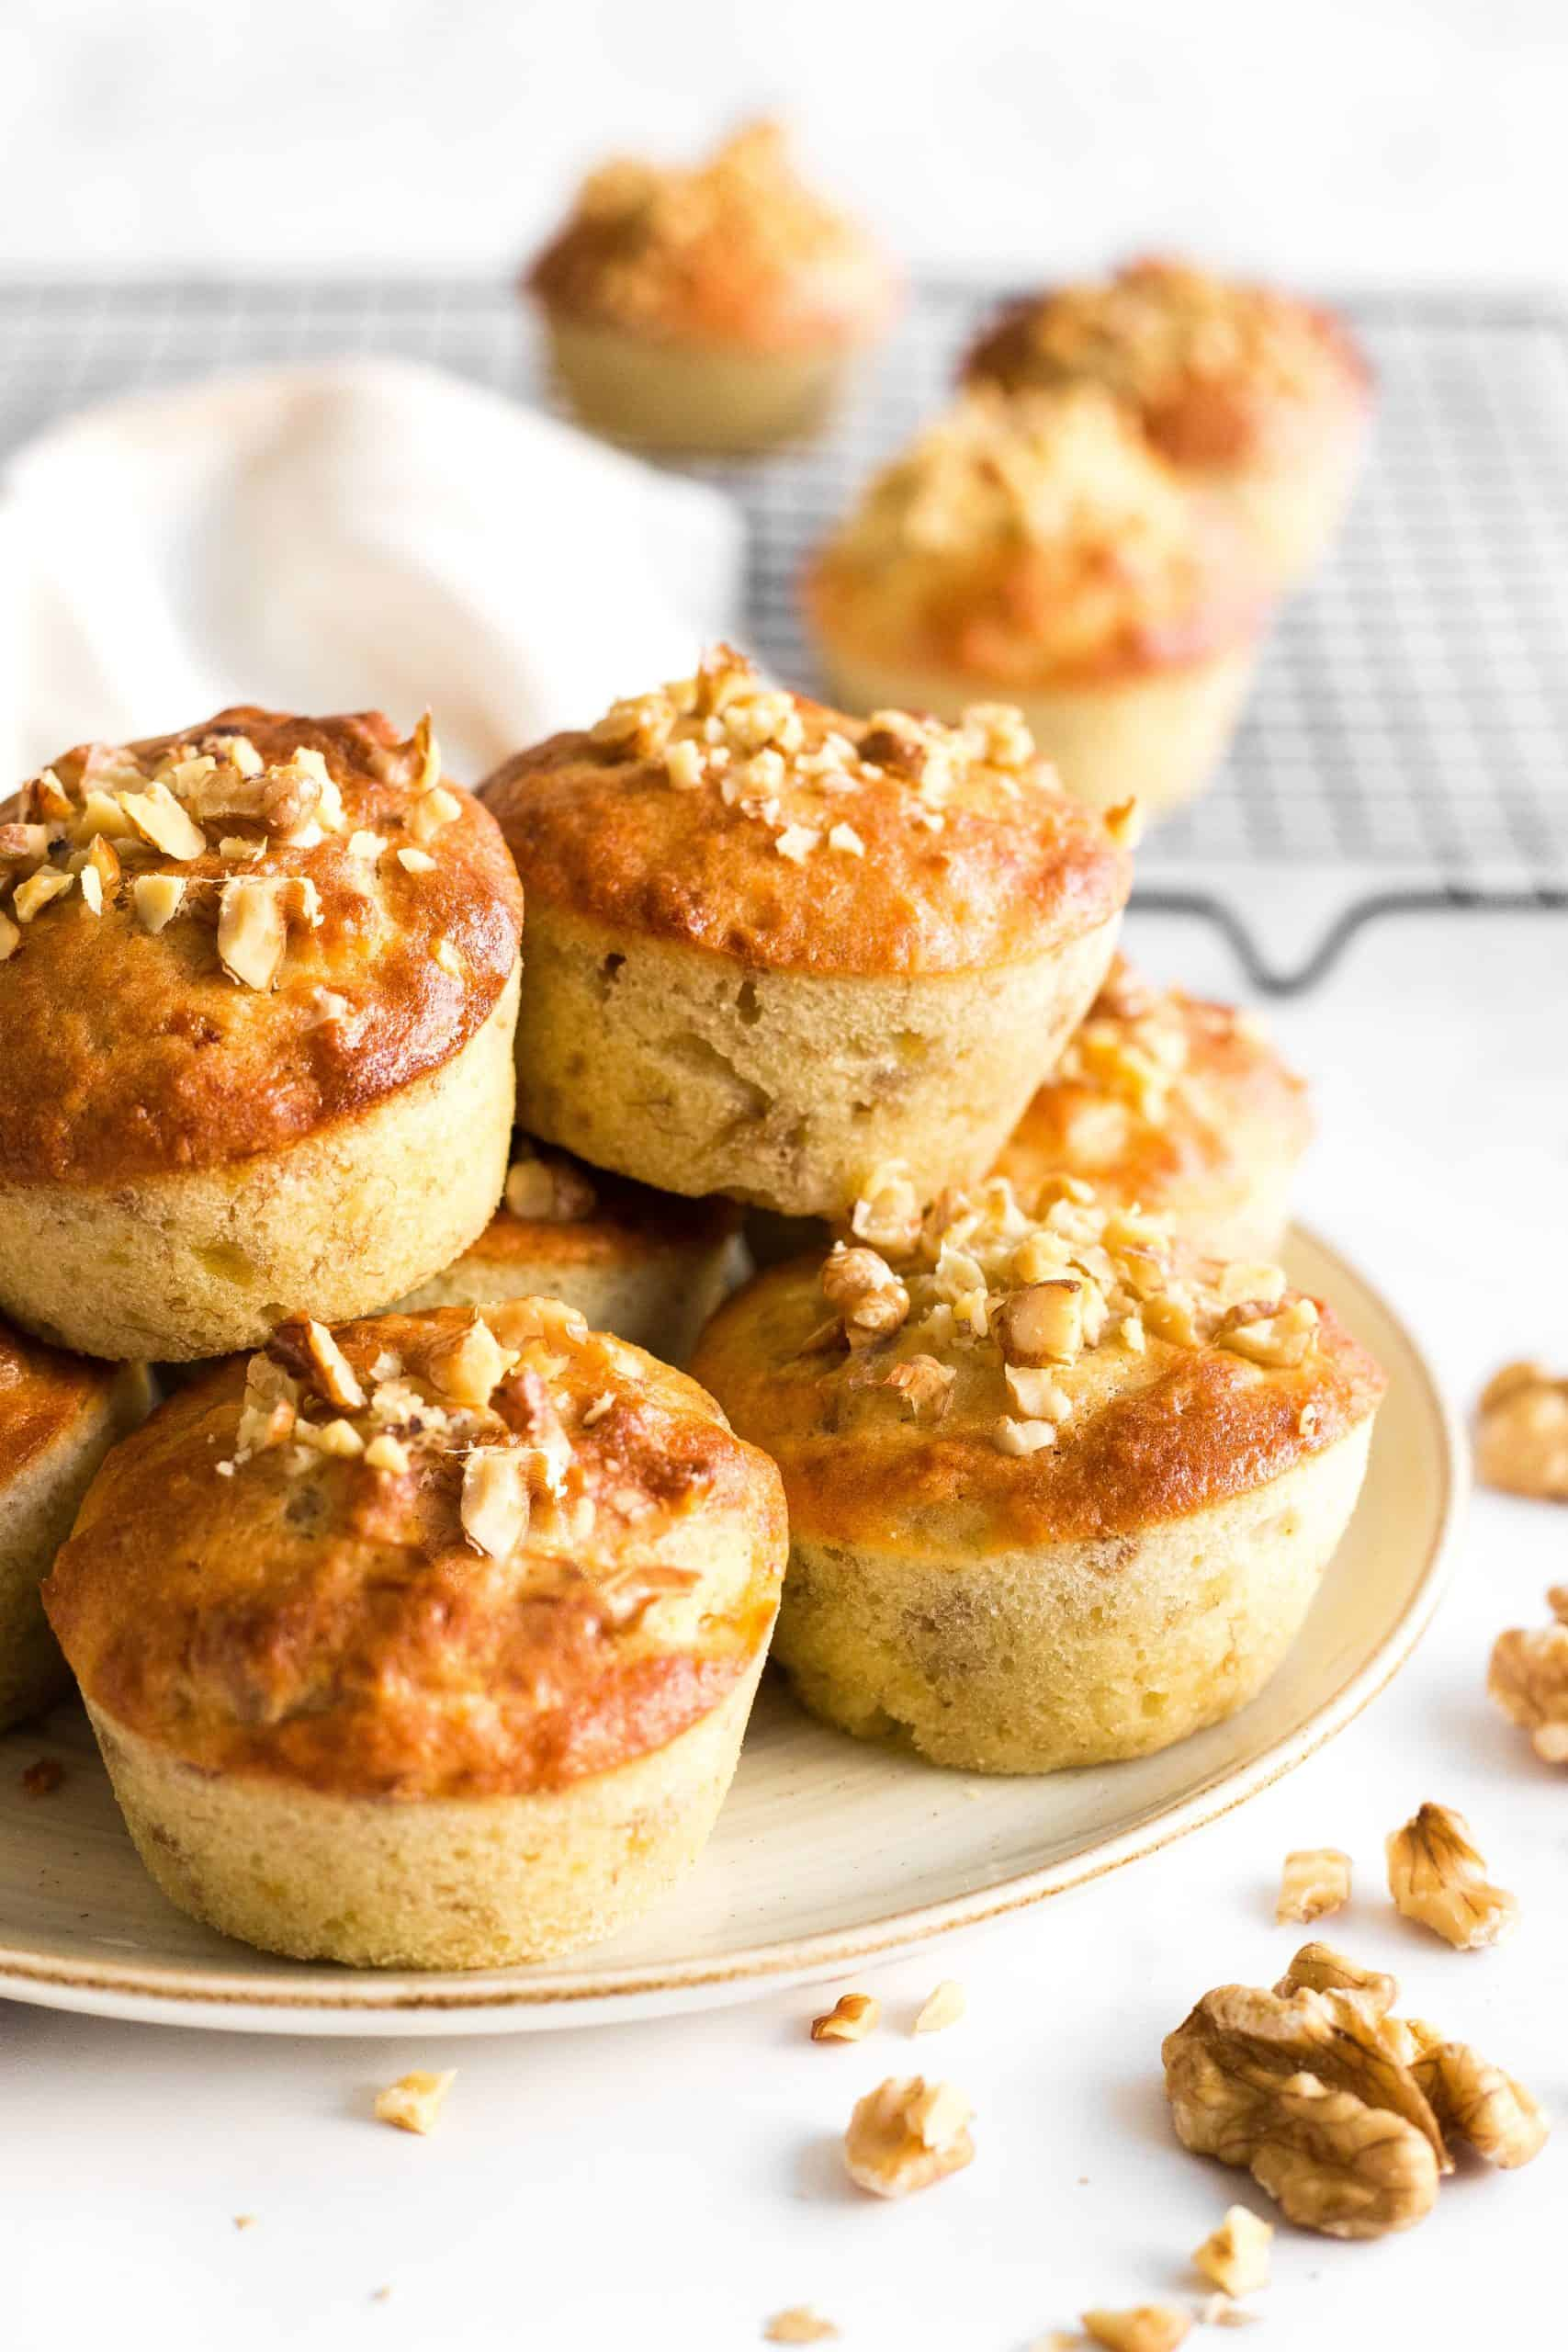 Close up of a plate of banana nut muffins.